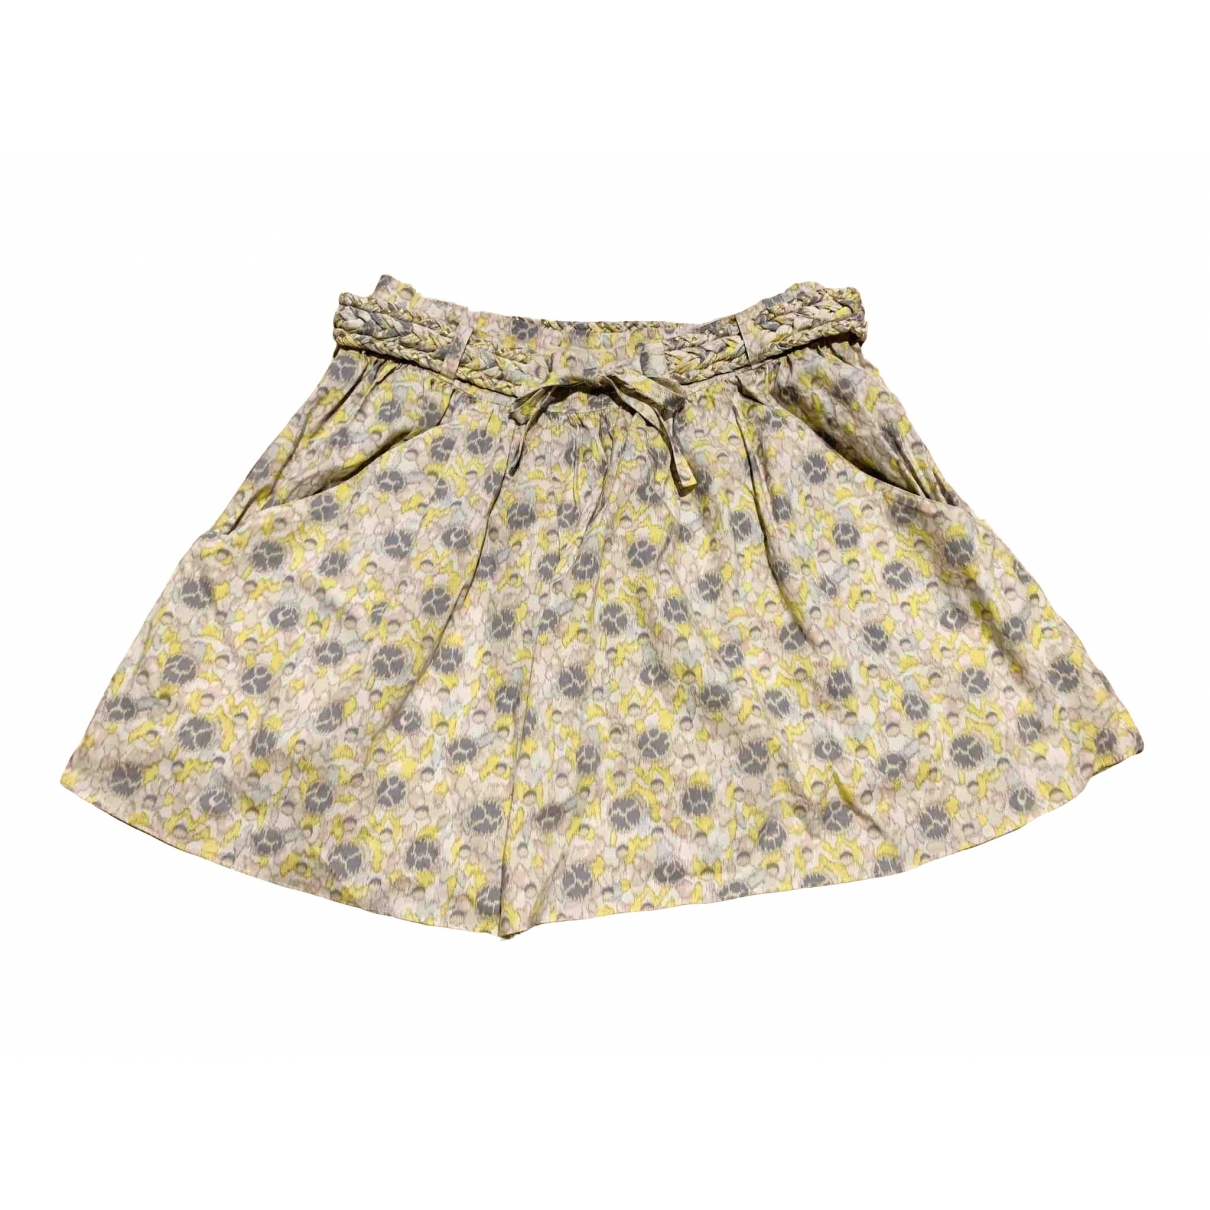 Vanessa Bruno Athe \N Yellow Cotton skirt for Women 34 FR